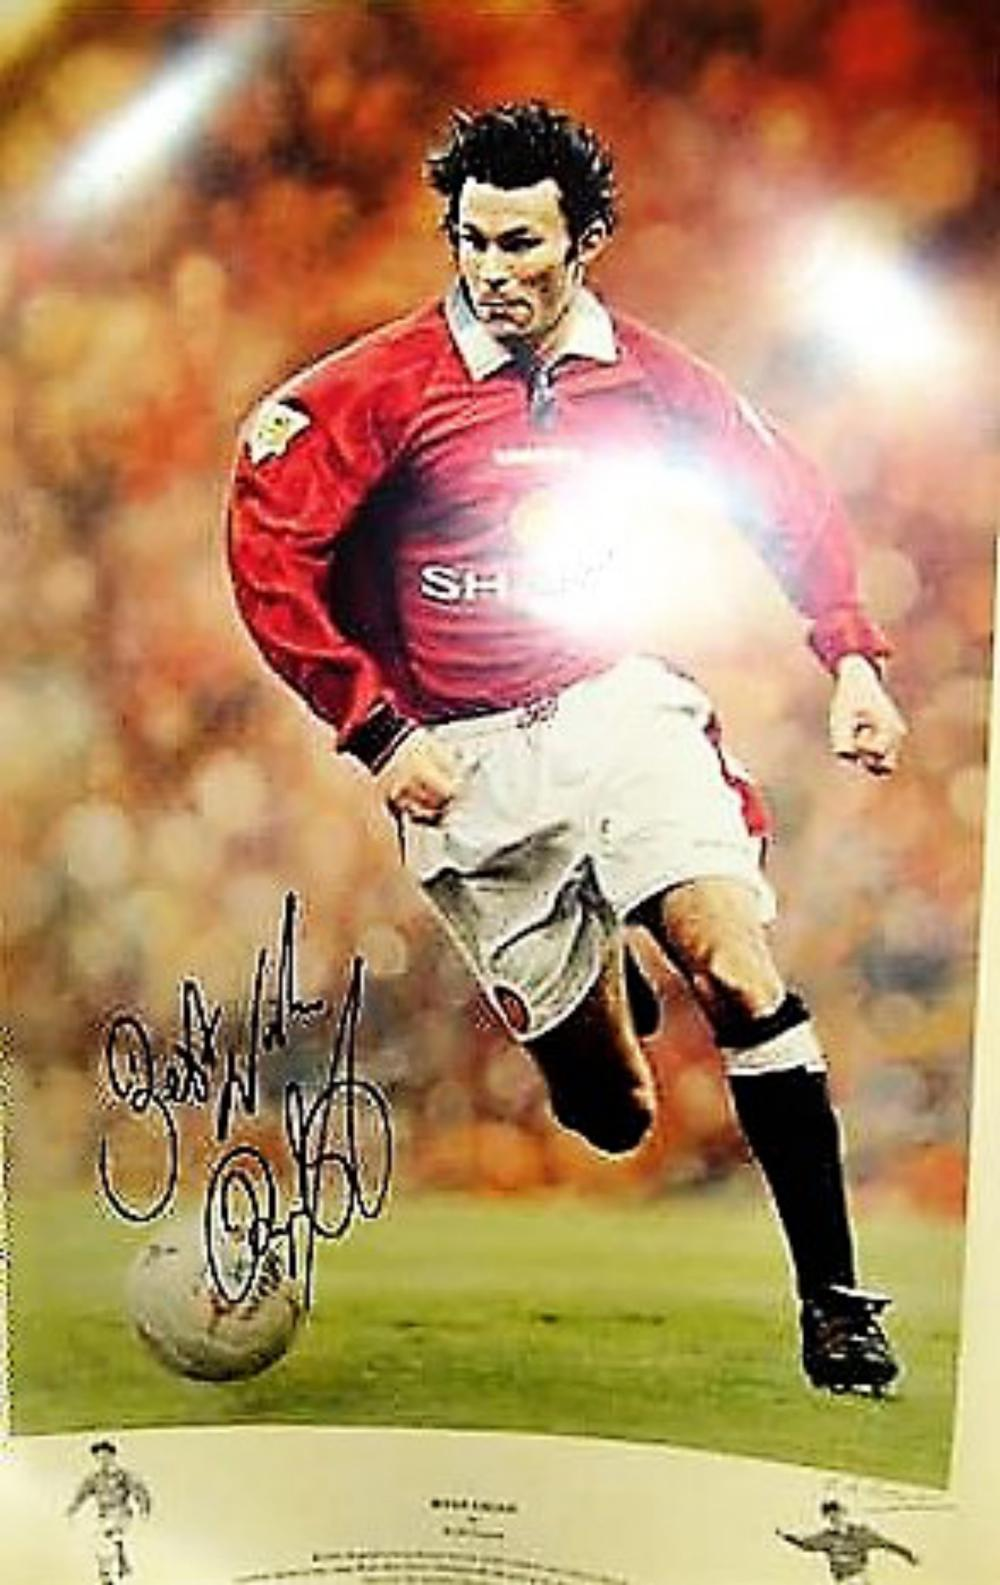 Lot 149: RYAN GIGGS Manchester United Legend Signed Print - Winner of 13 Premier League Titles, 4 x FA & League Cups, 9 x Community Shields and 2 x Champions League trophies.